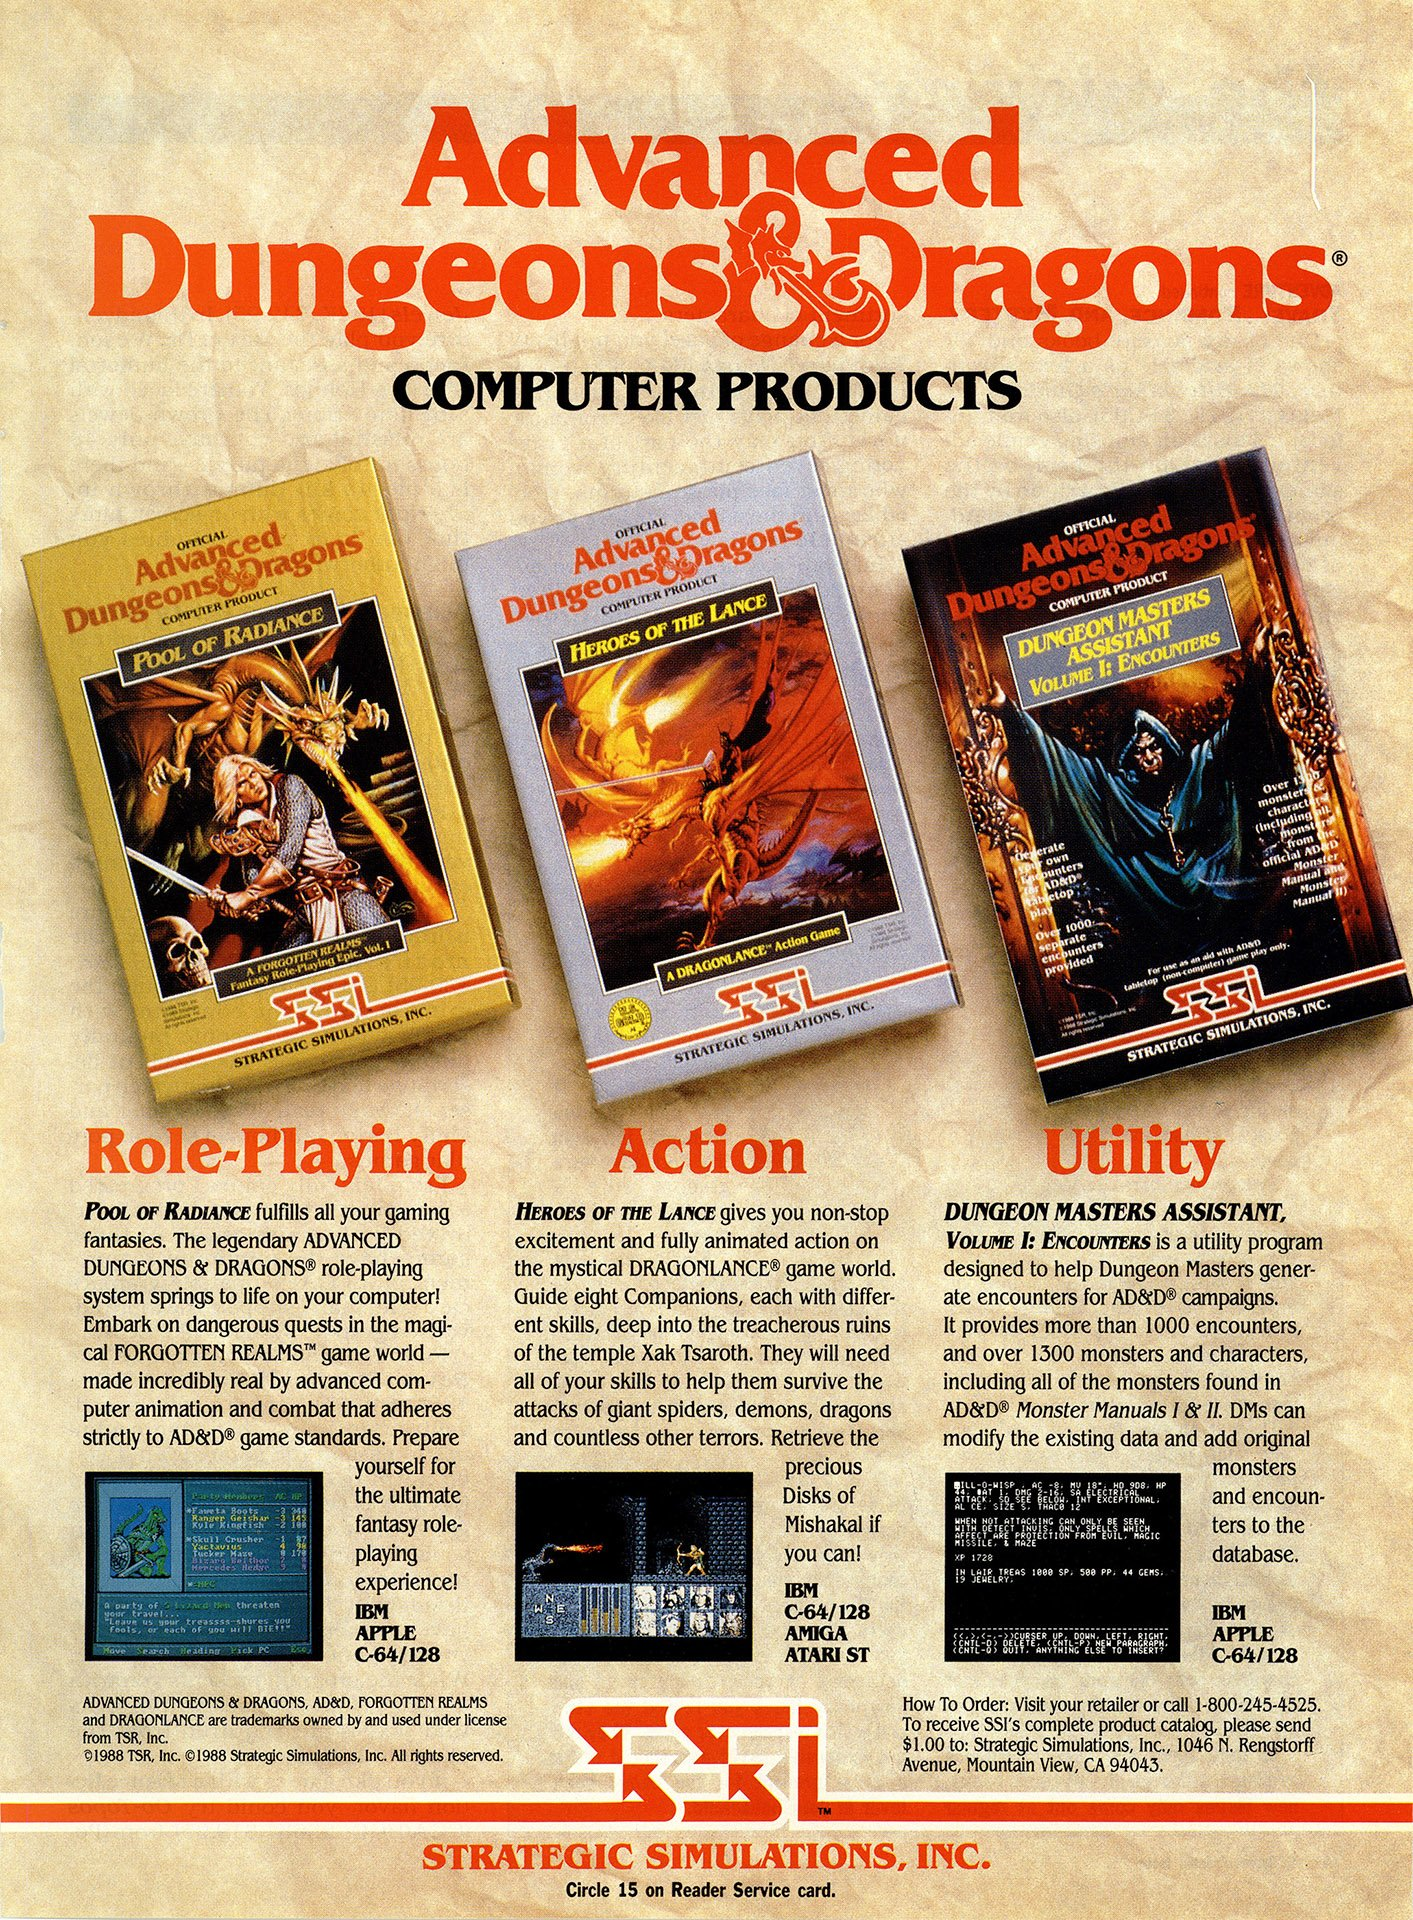 Pool of Radiance, Heroes of the Lance, Dungeon Master's Assistant